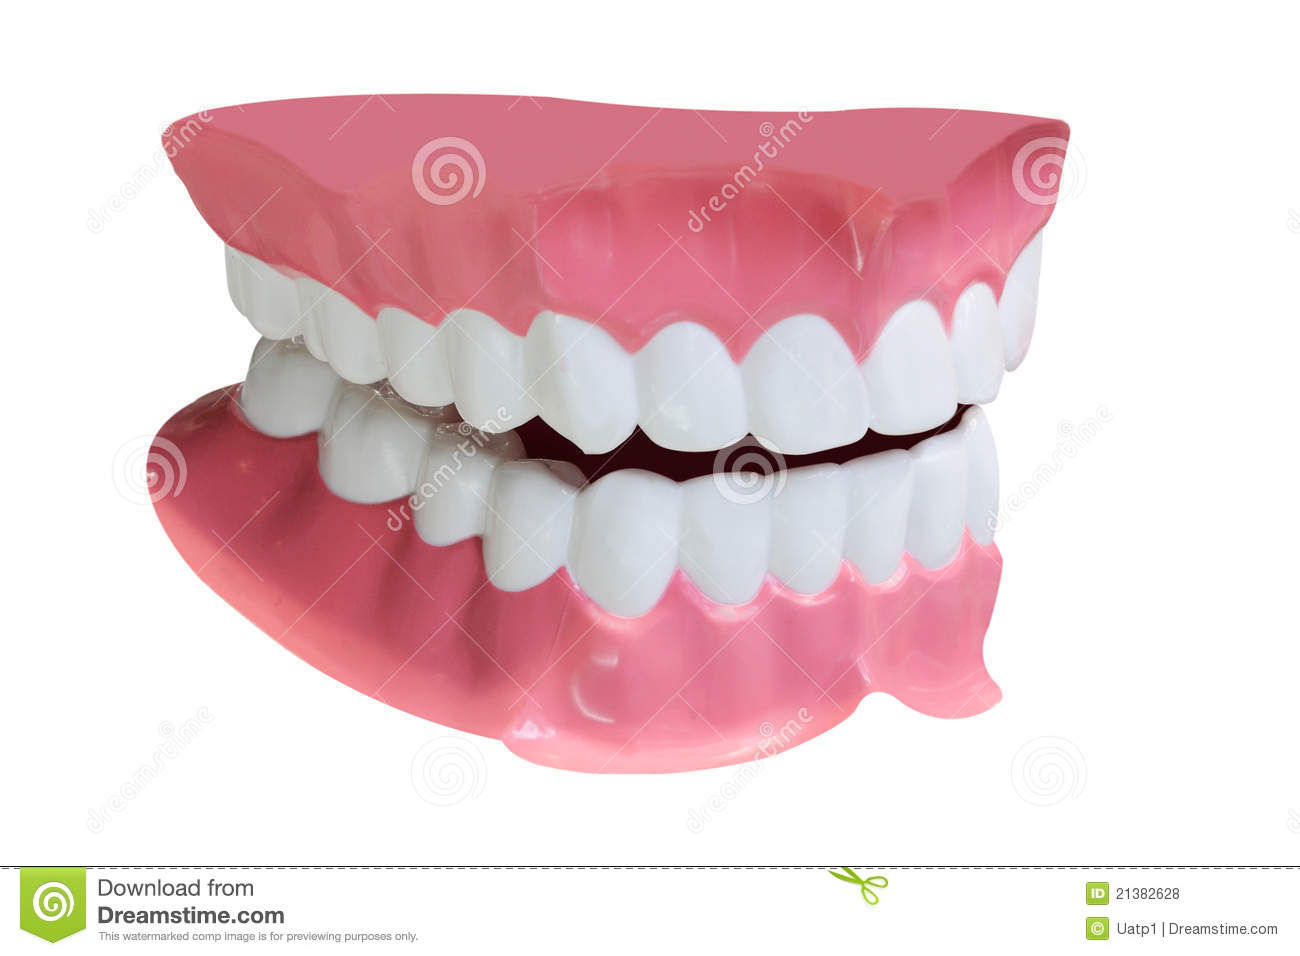 Dentures Royalty Free Stock Photos - Image: 21382628